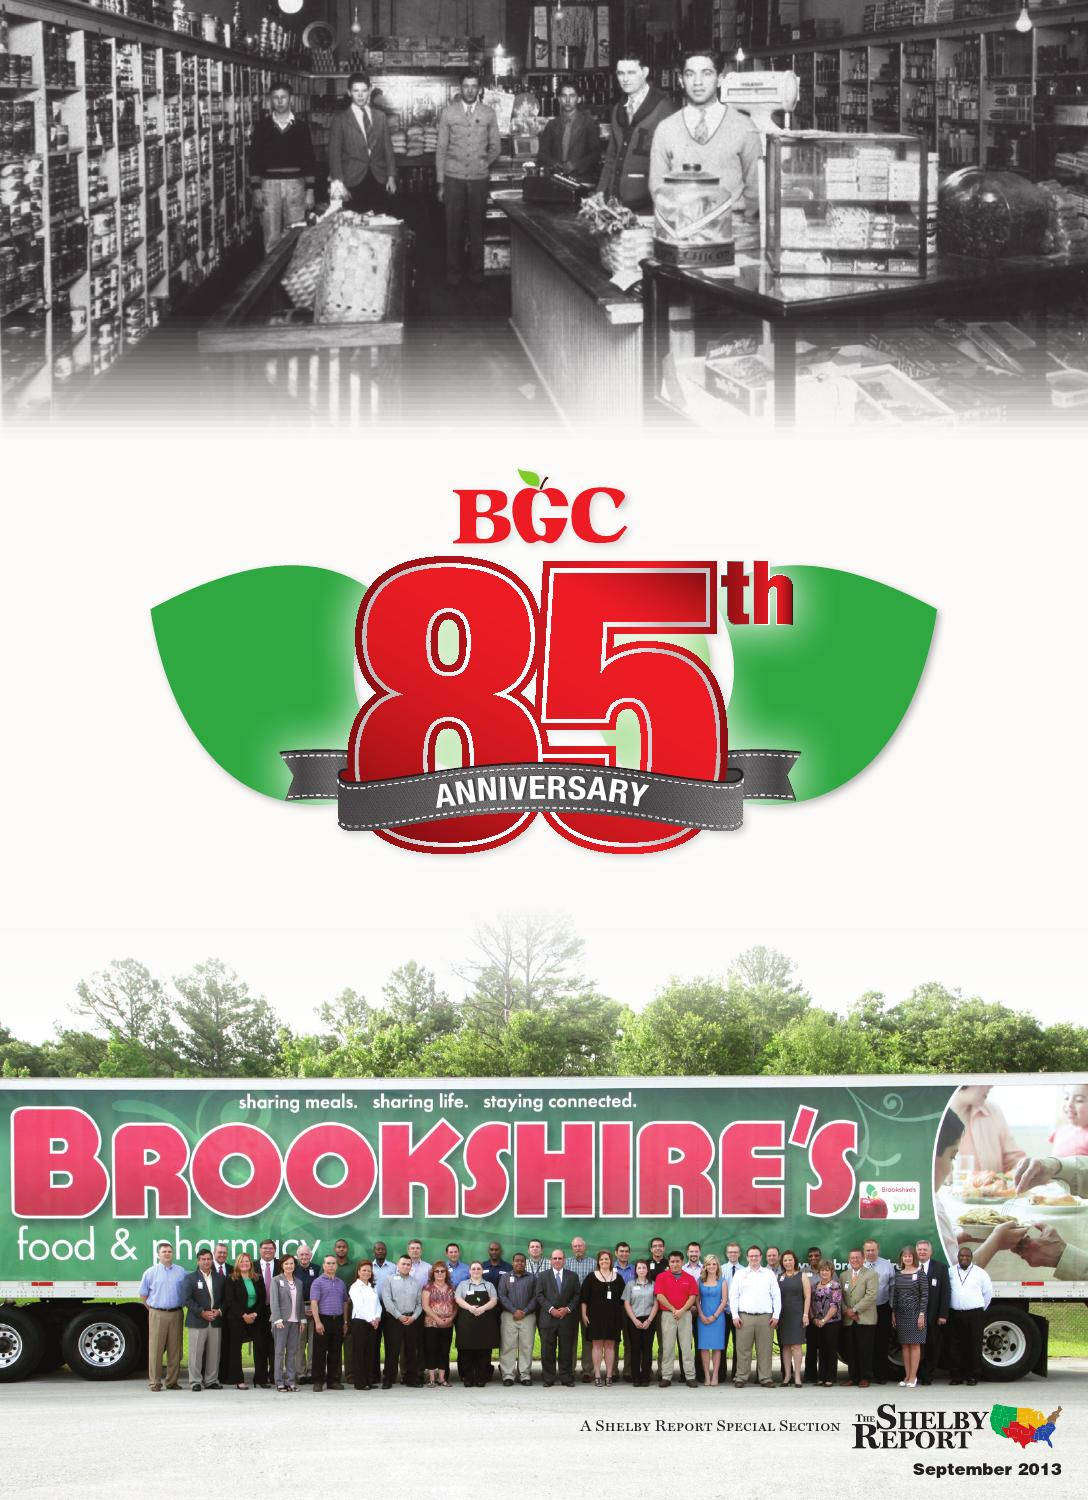 brookshire dating 100% free online dating in brookshire 1,500,000 daily active members.